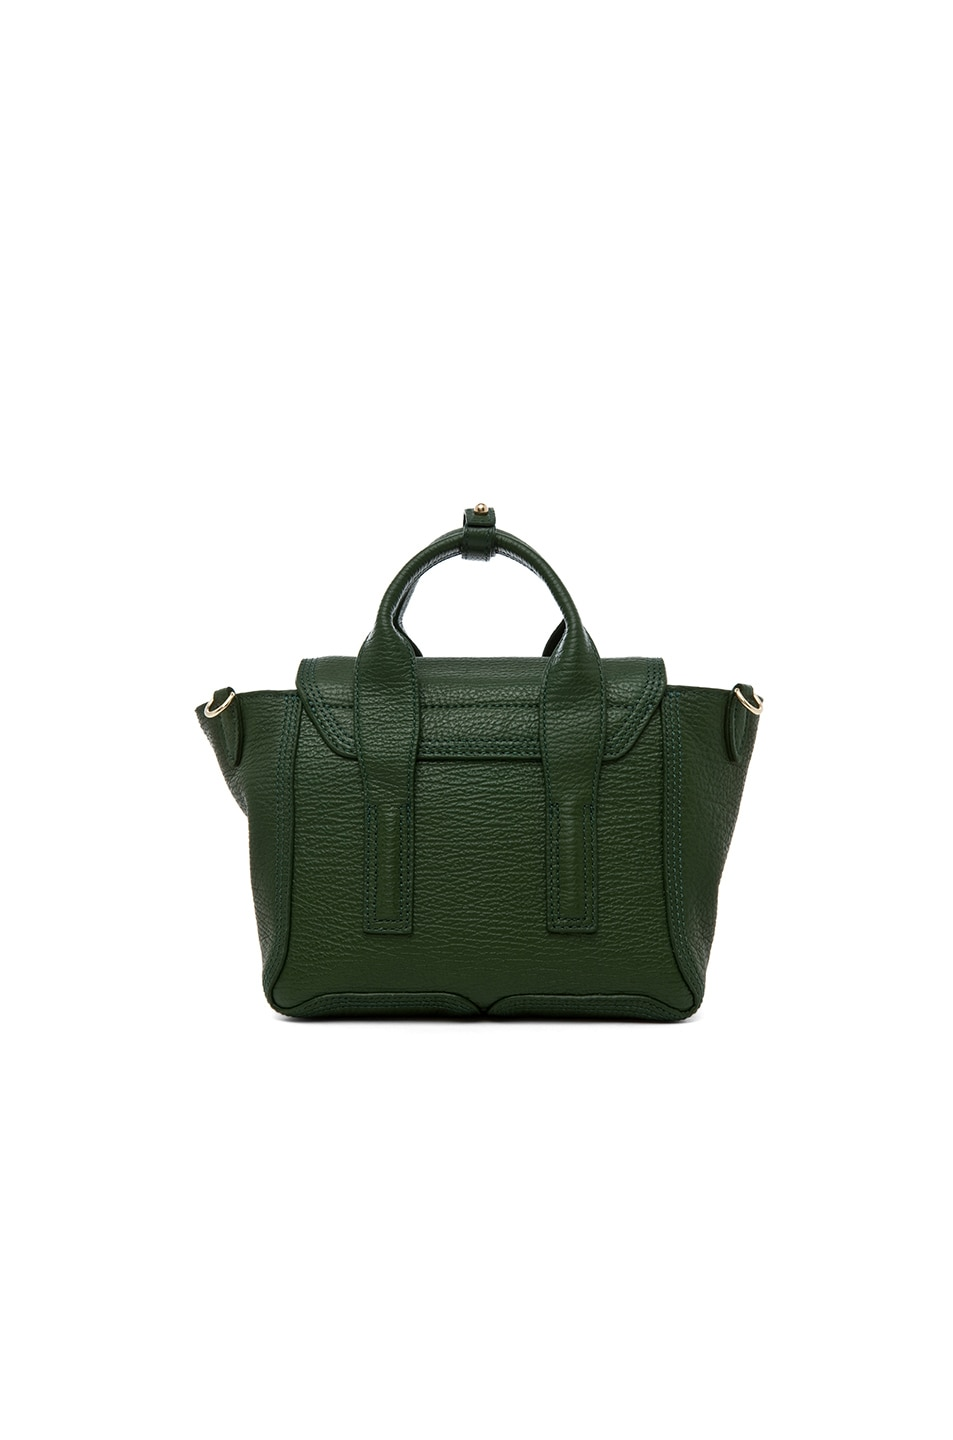 Image 2 of 3.1 phillip lim Mini Pashli Satchel in Jade